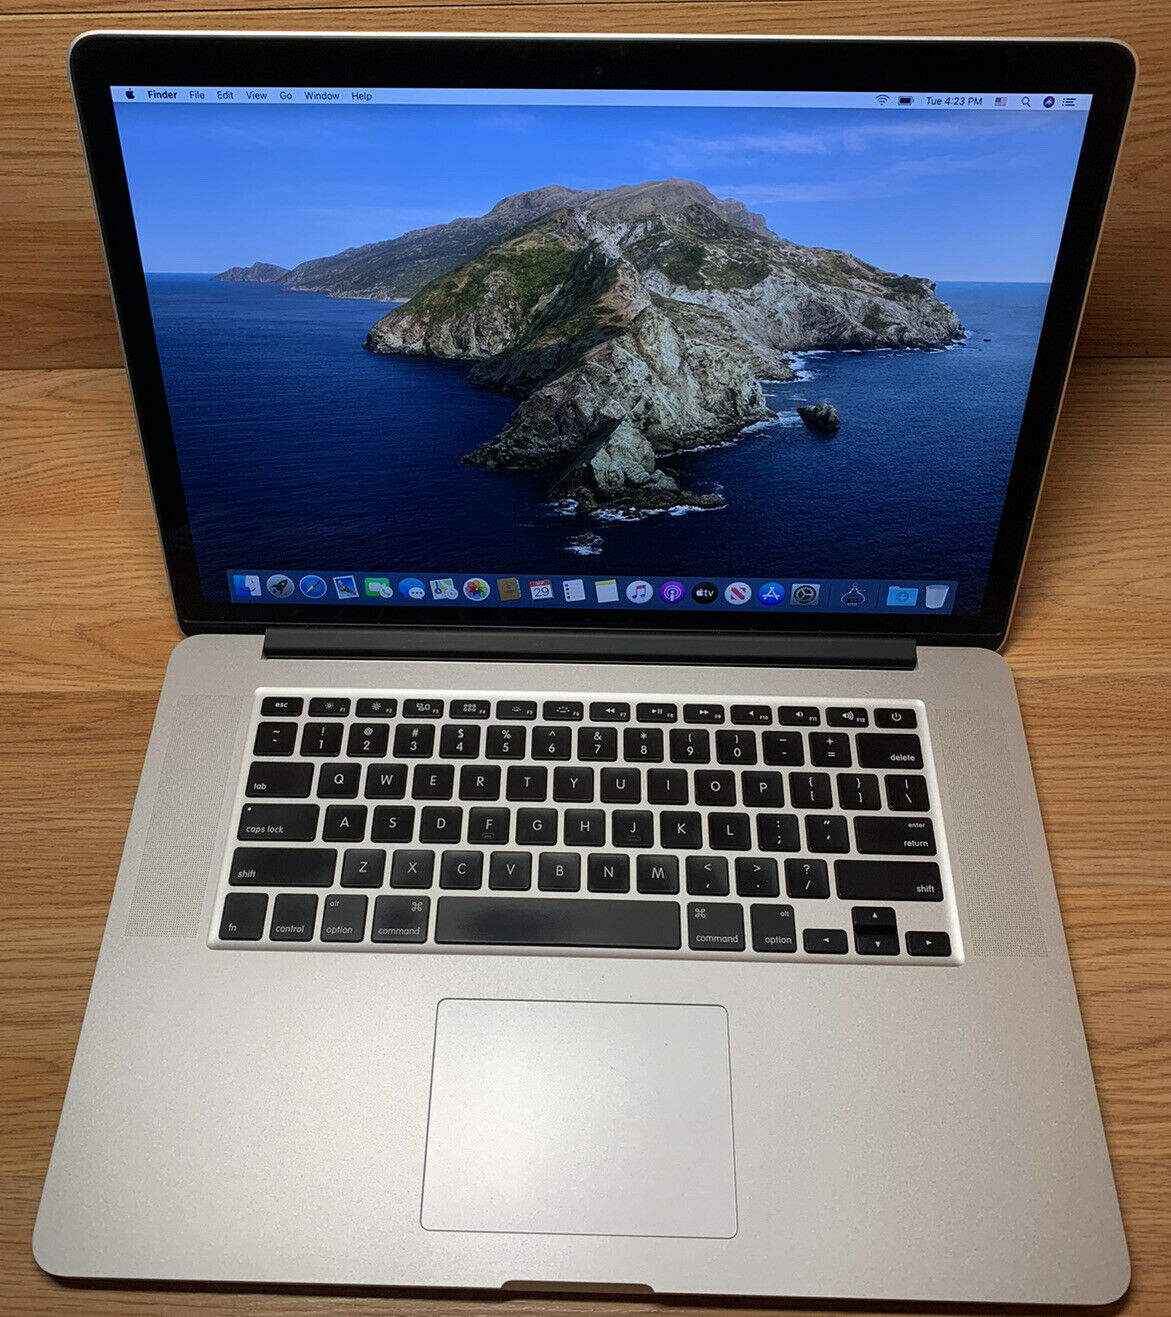 """Apple Macbook Pro 15"""" 2.5GHz/i7/16GB/512GB SSD/R9 M370X/Cycle Count :8. Buy it now for 990.00"""